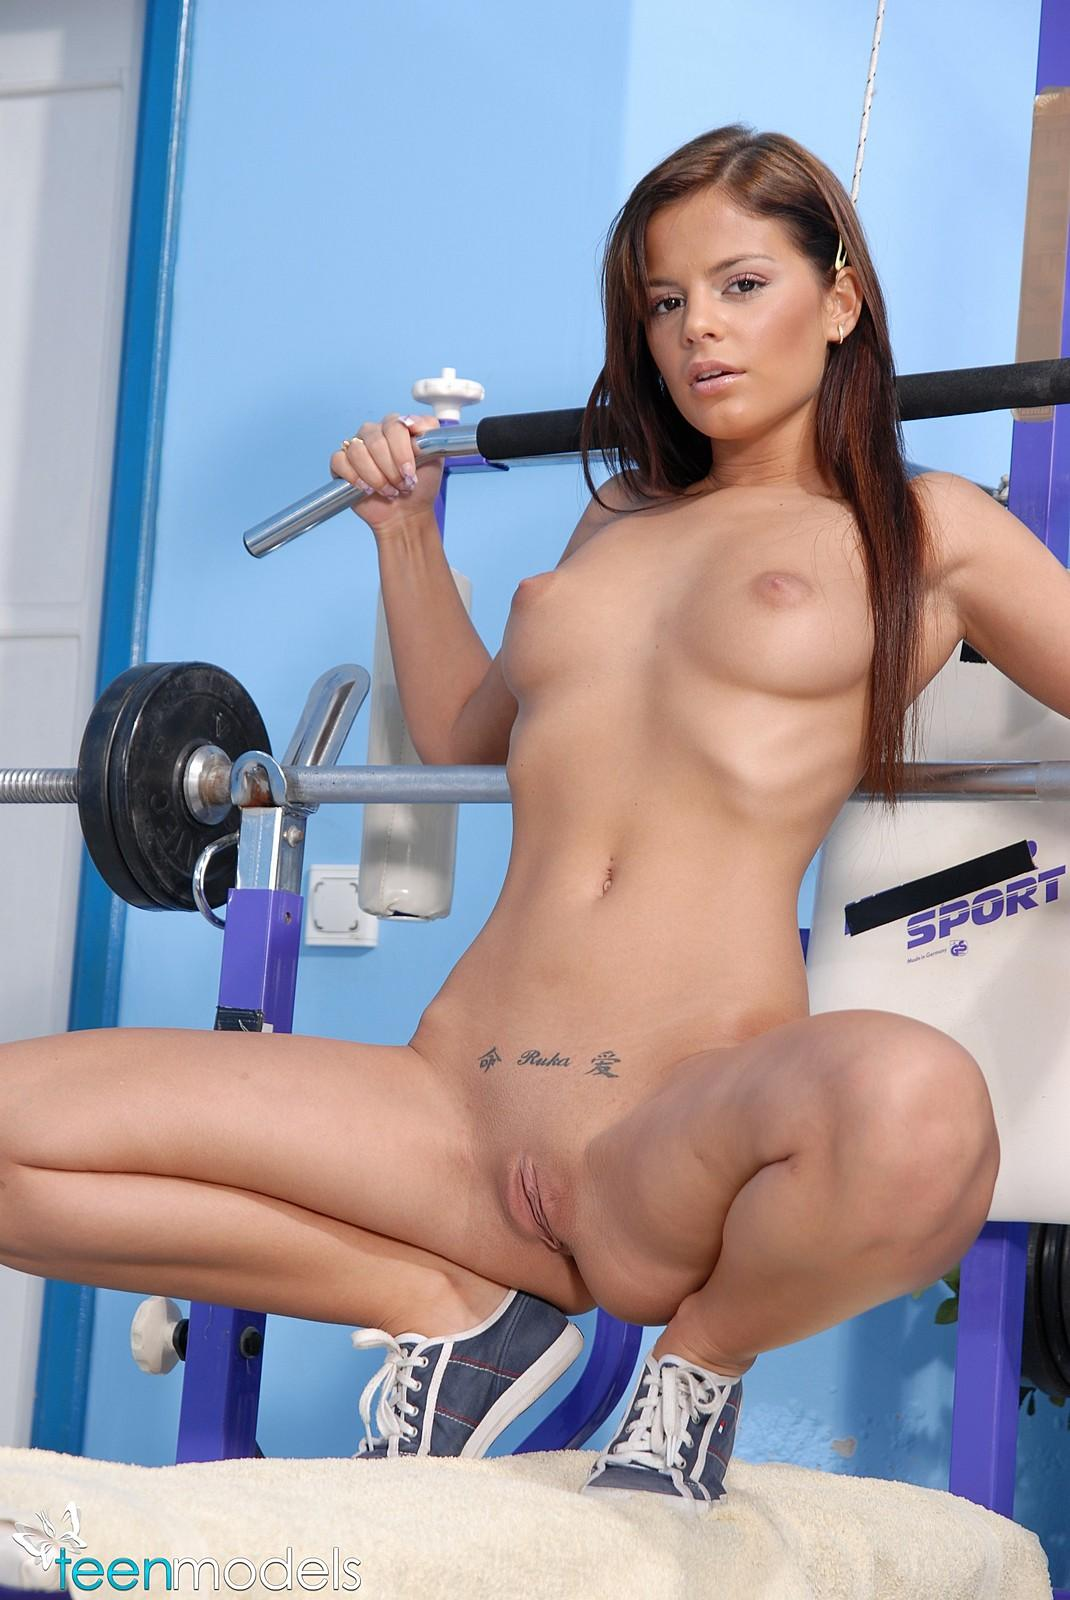 naked-workout-girls-lex-steele-best-porn